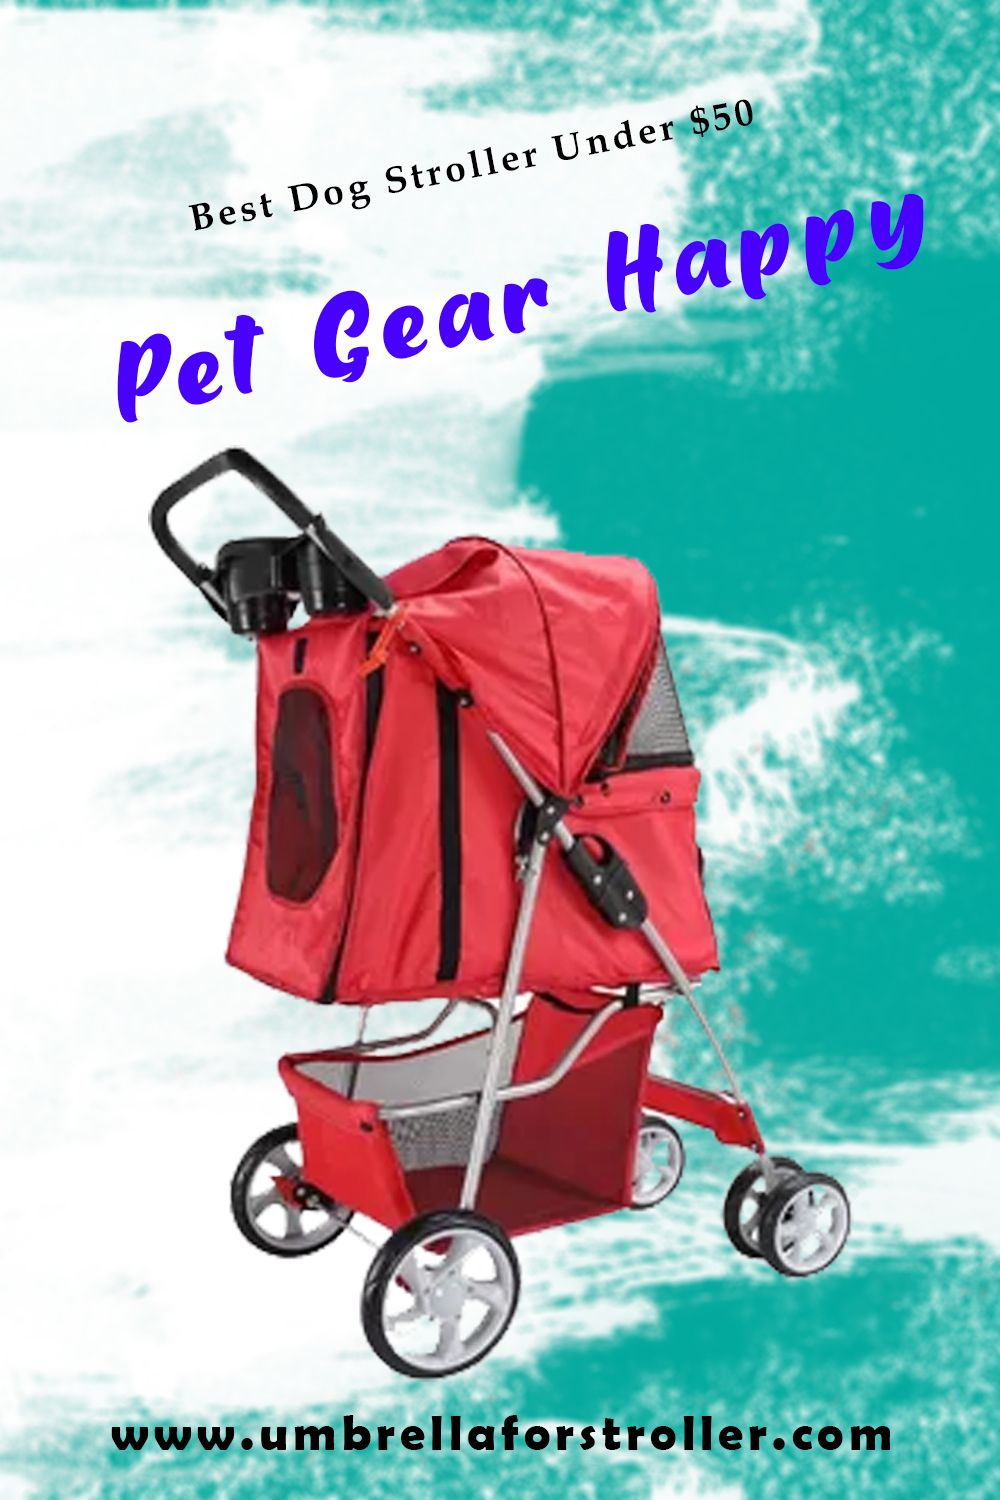 Pet Gear Happy in 2020 Dog stroller, Stroller, Pet gear